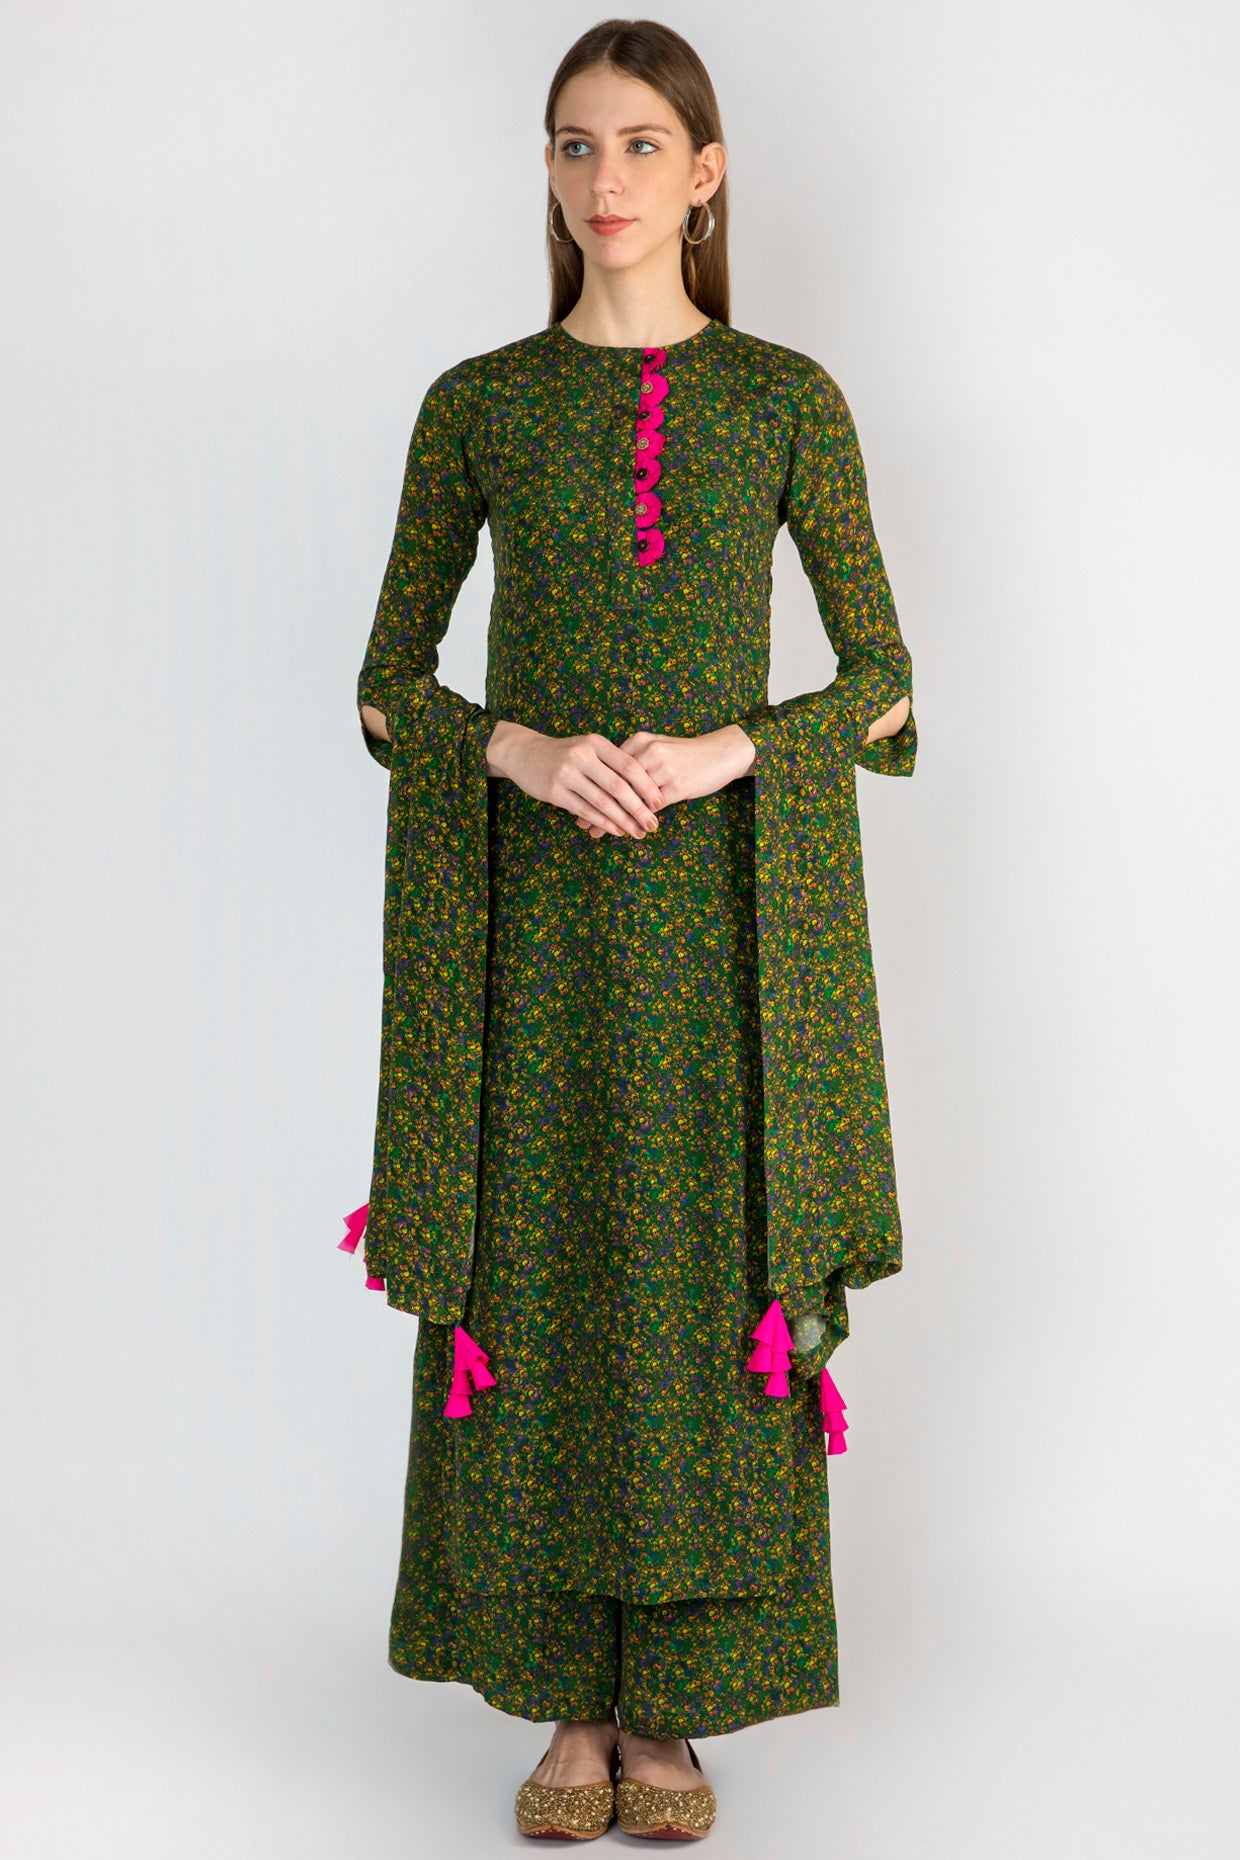 EMERALD FLORAL RUSH KURTA, PALAZZO AND DUPATTA - The Grand Trunk